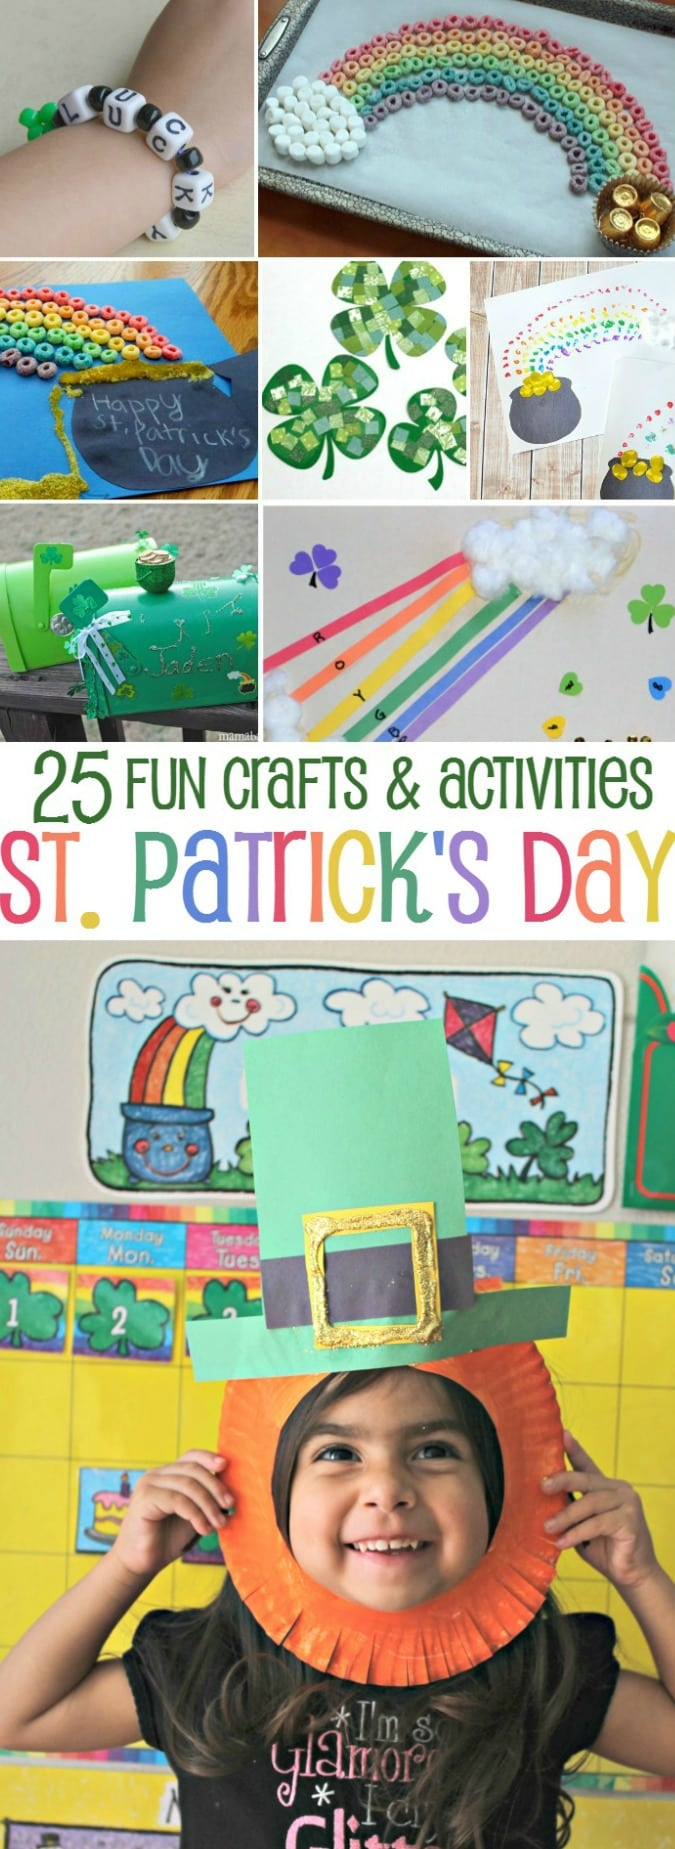 Looking for some fun St. Patrick's Day ideas for kids? Check out these 25 Fun Crafts and Activities for St. Patrick's Day kids will love! - simplytodaylife.com